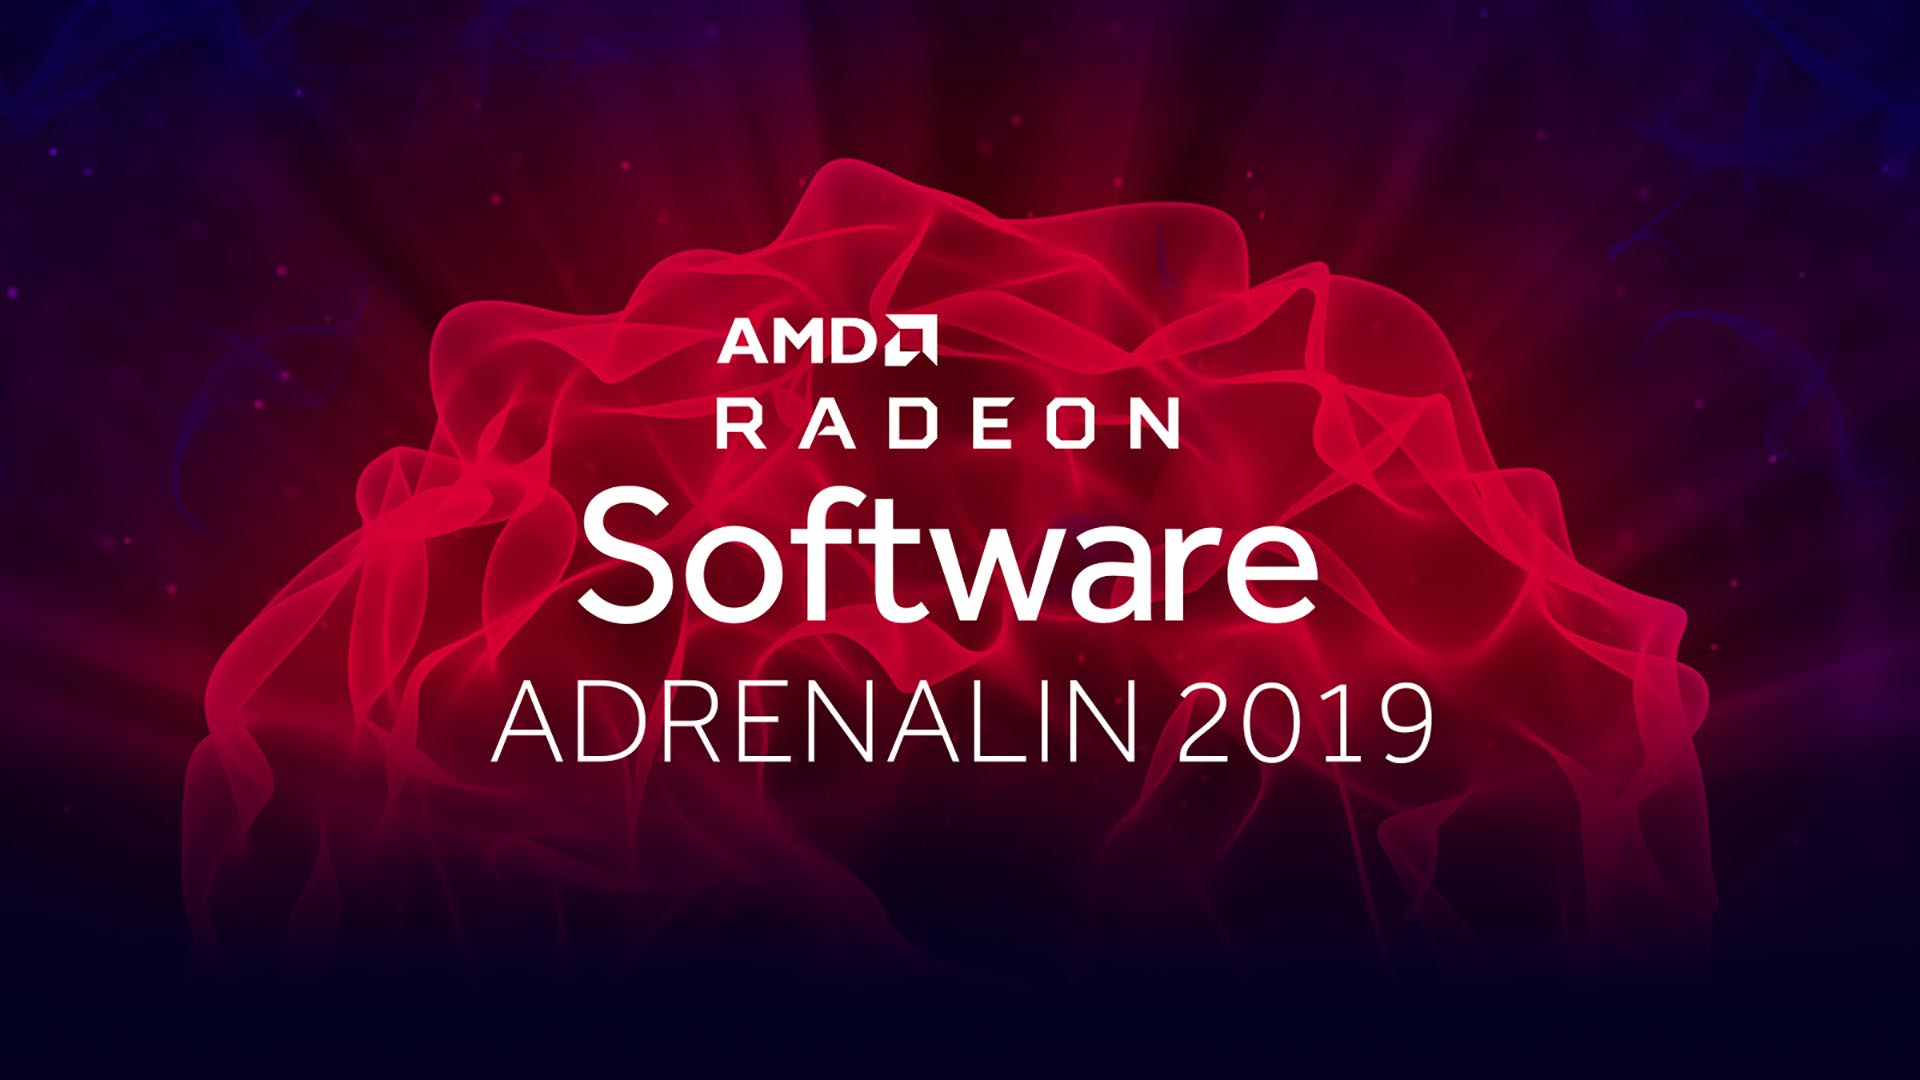 AMD is prepping Integer Scaling for its Radeon graphics card drivers